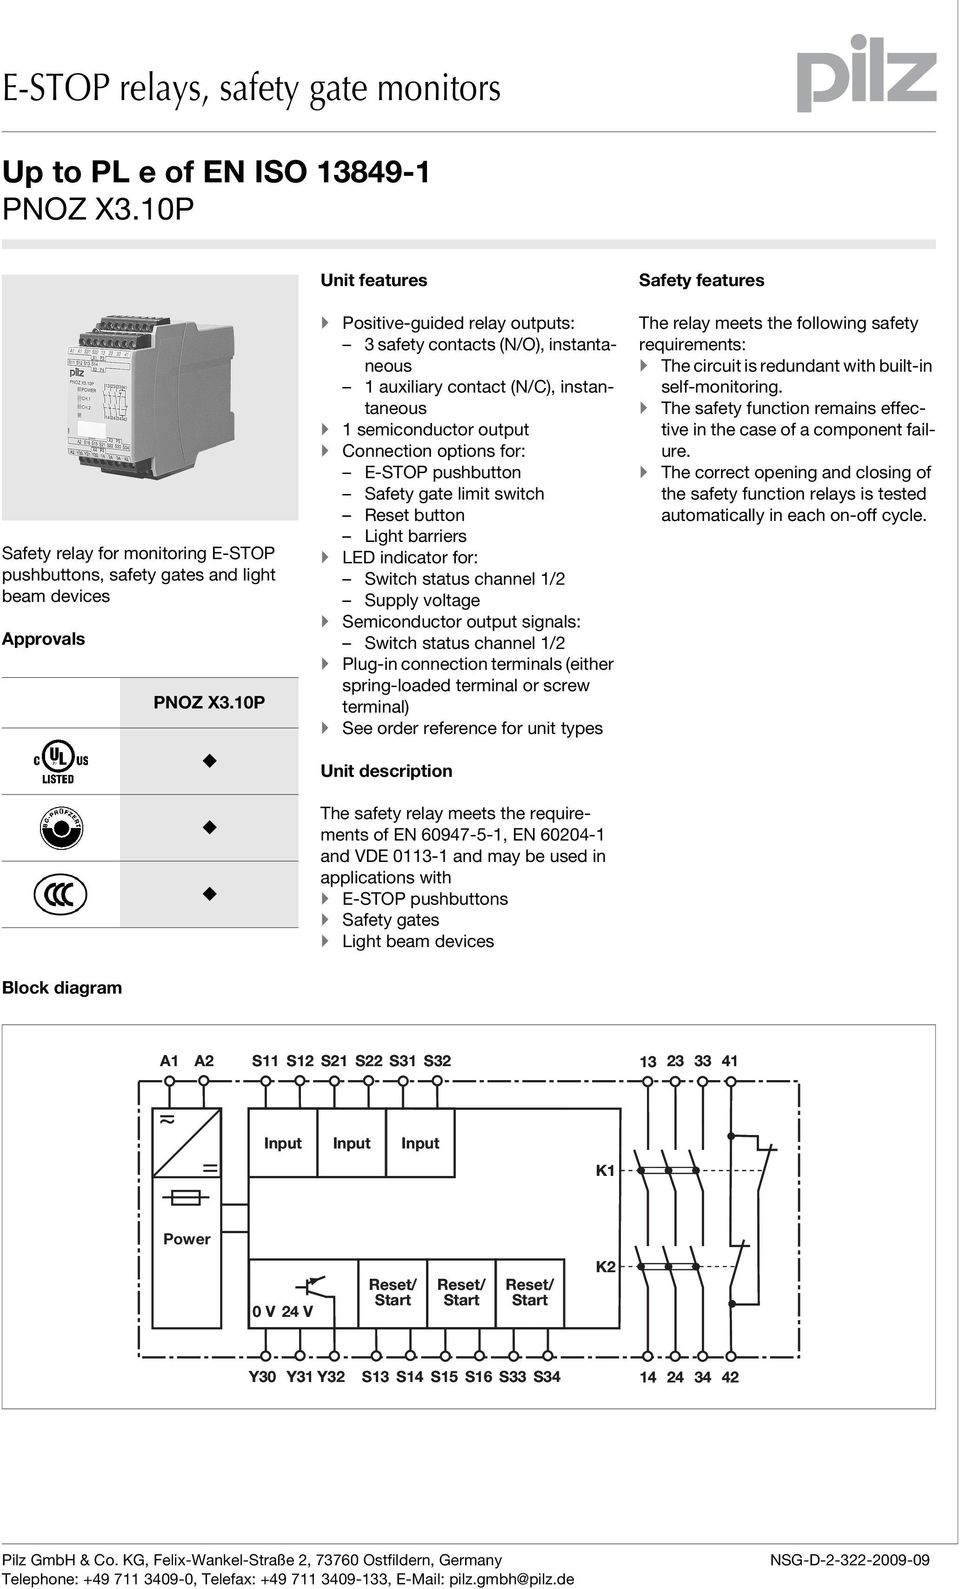 auxiliary contact (N/C), instantaneous 1 semiconductor output Connection options for: E-STOP pushbutton Safety gate limit switch Reset button Light barriers LED indicator for: Switch status channel